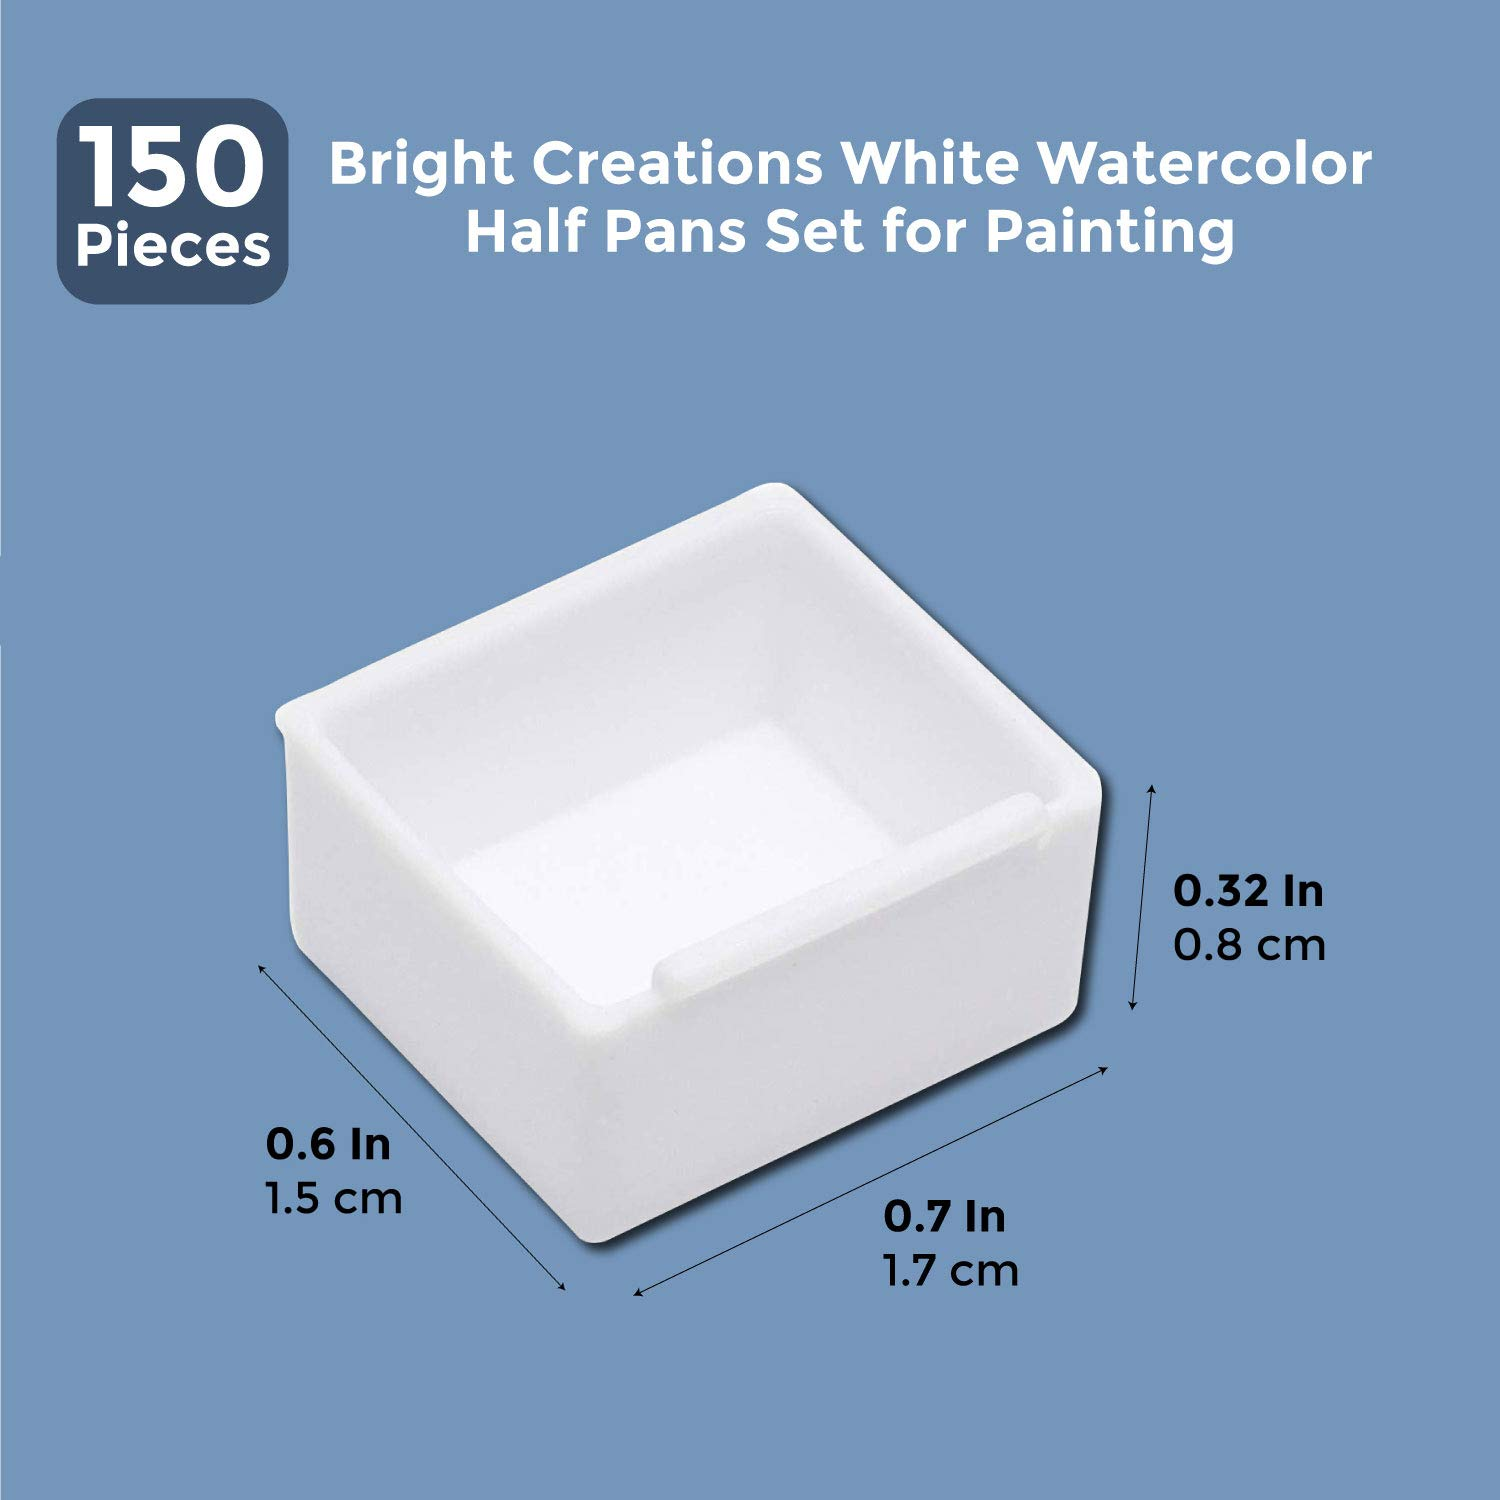 Set of 150 Bright Creations White Watercolor Half Pans Set for Painting